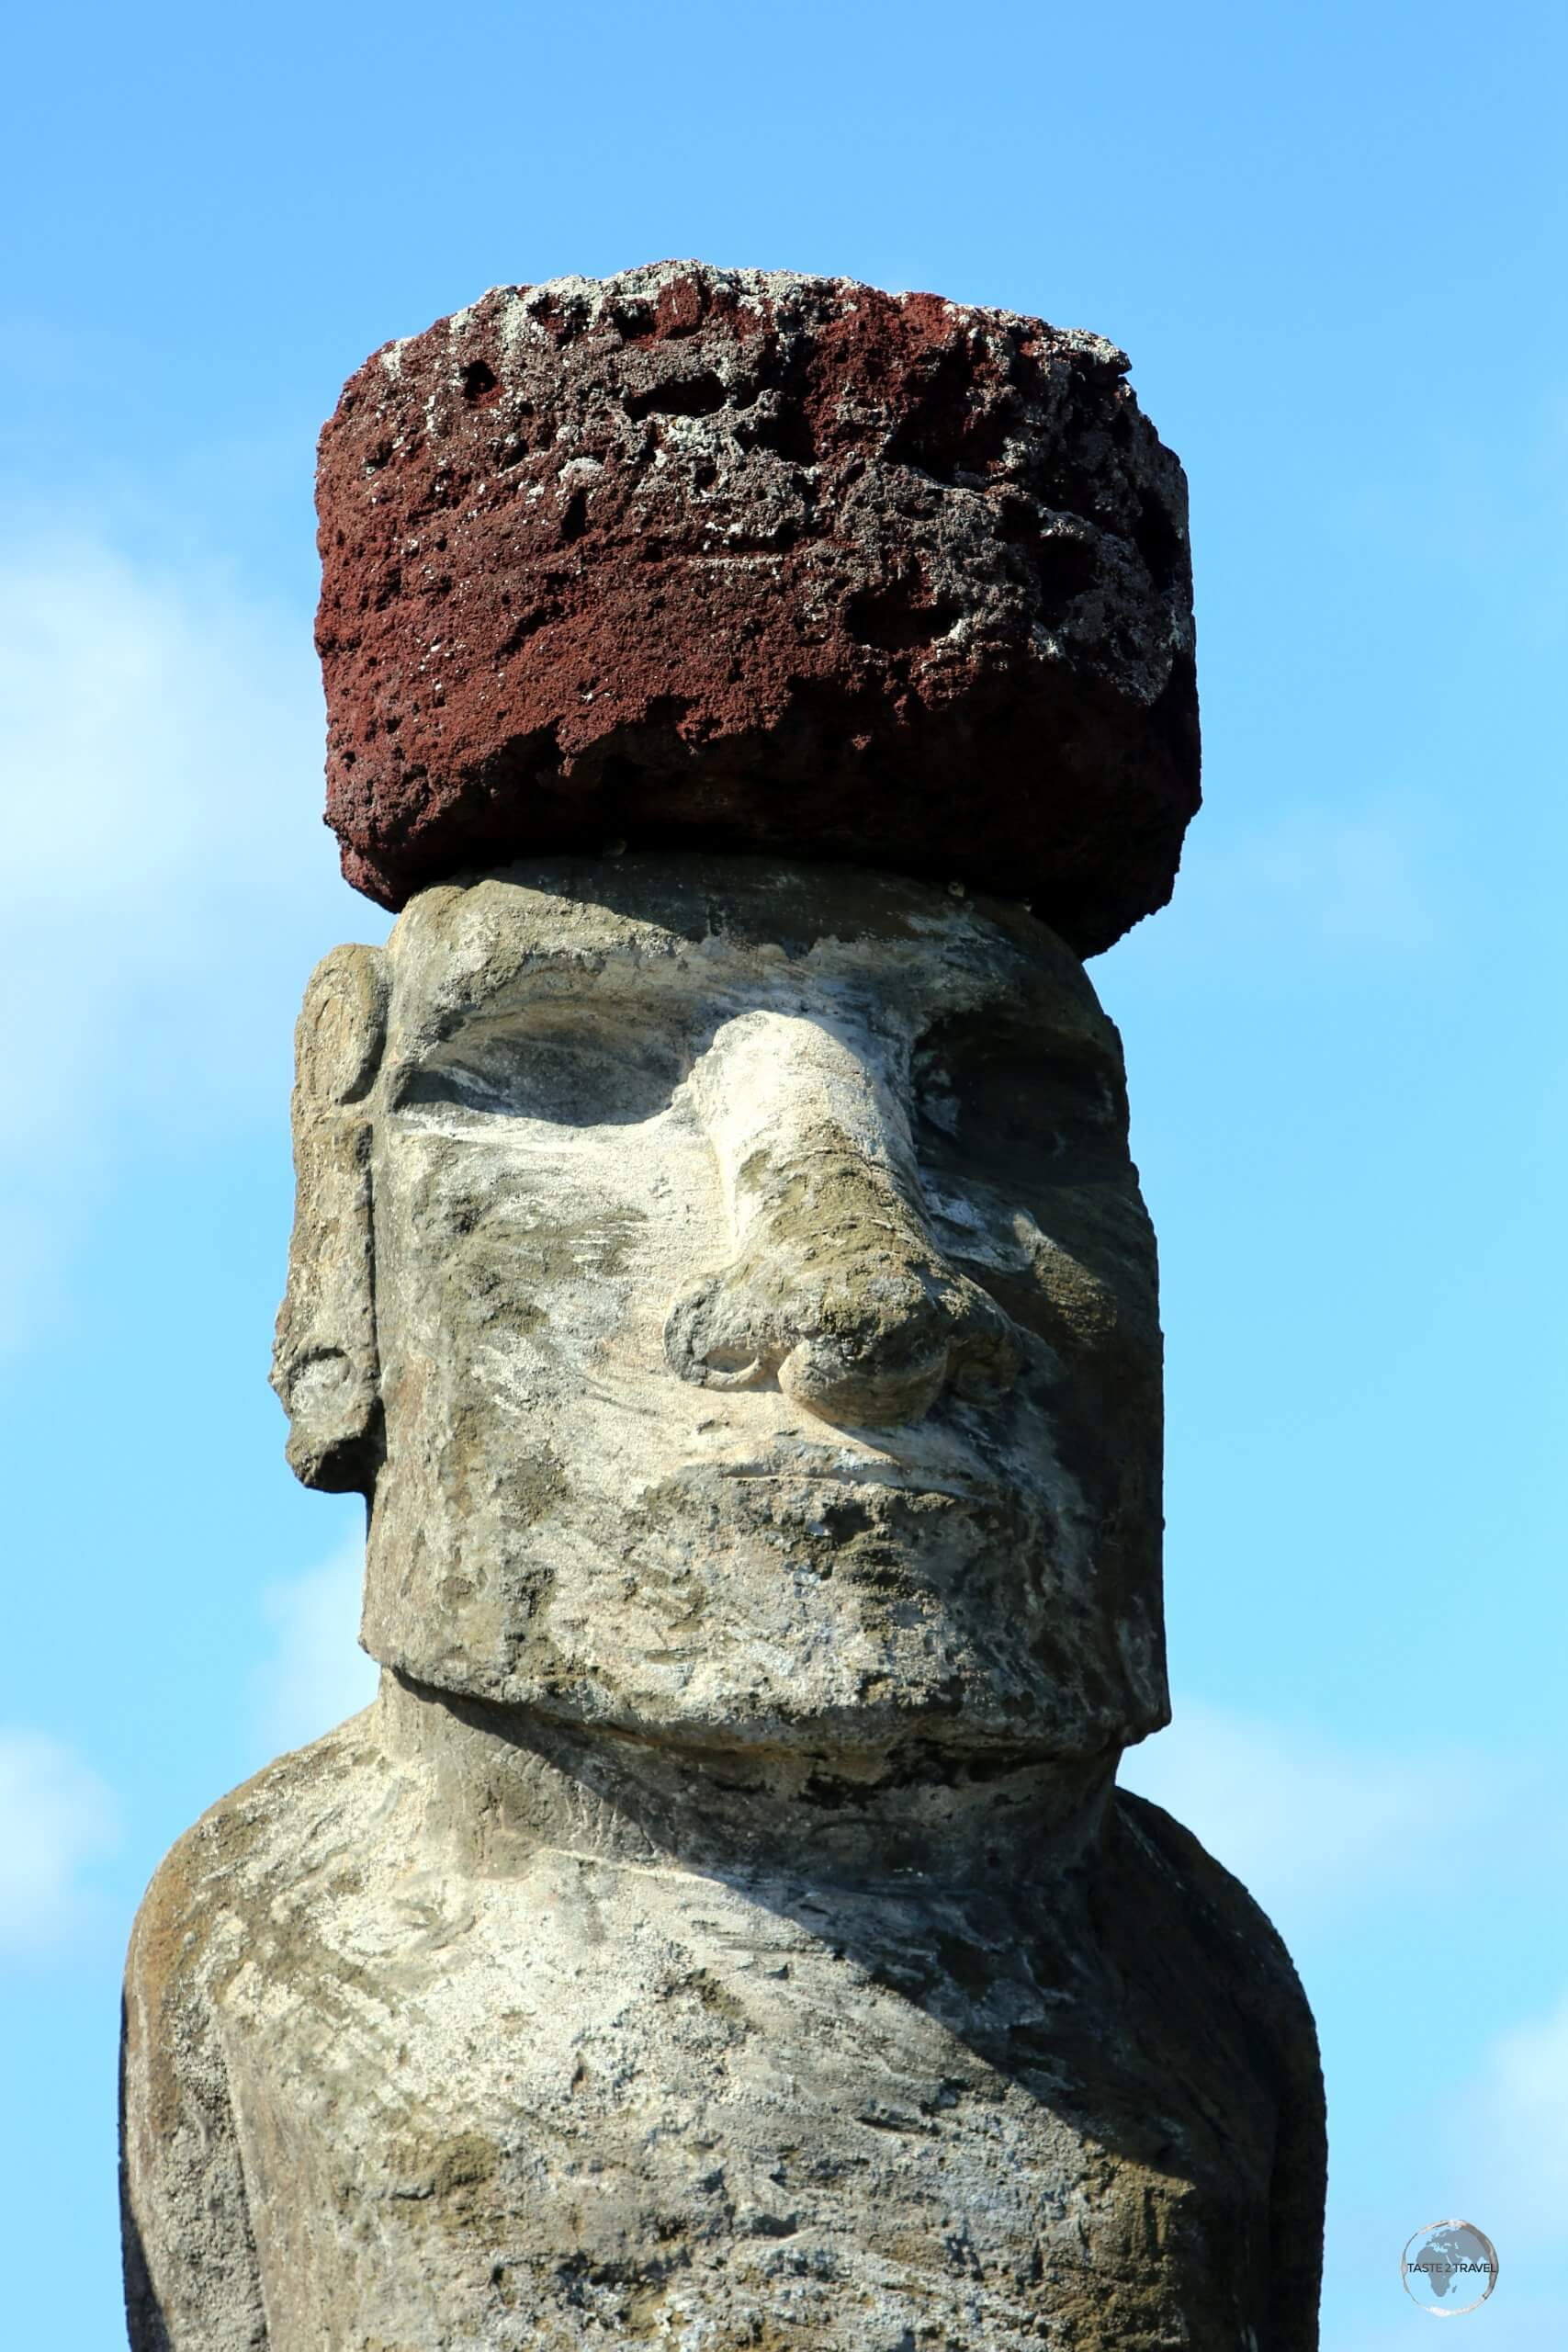 Pukao (topknots) were not made until the 15th - 16th centuries and are later additions to the moai, supposedly placed to indicate the power of the individual represented.